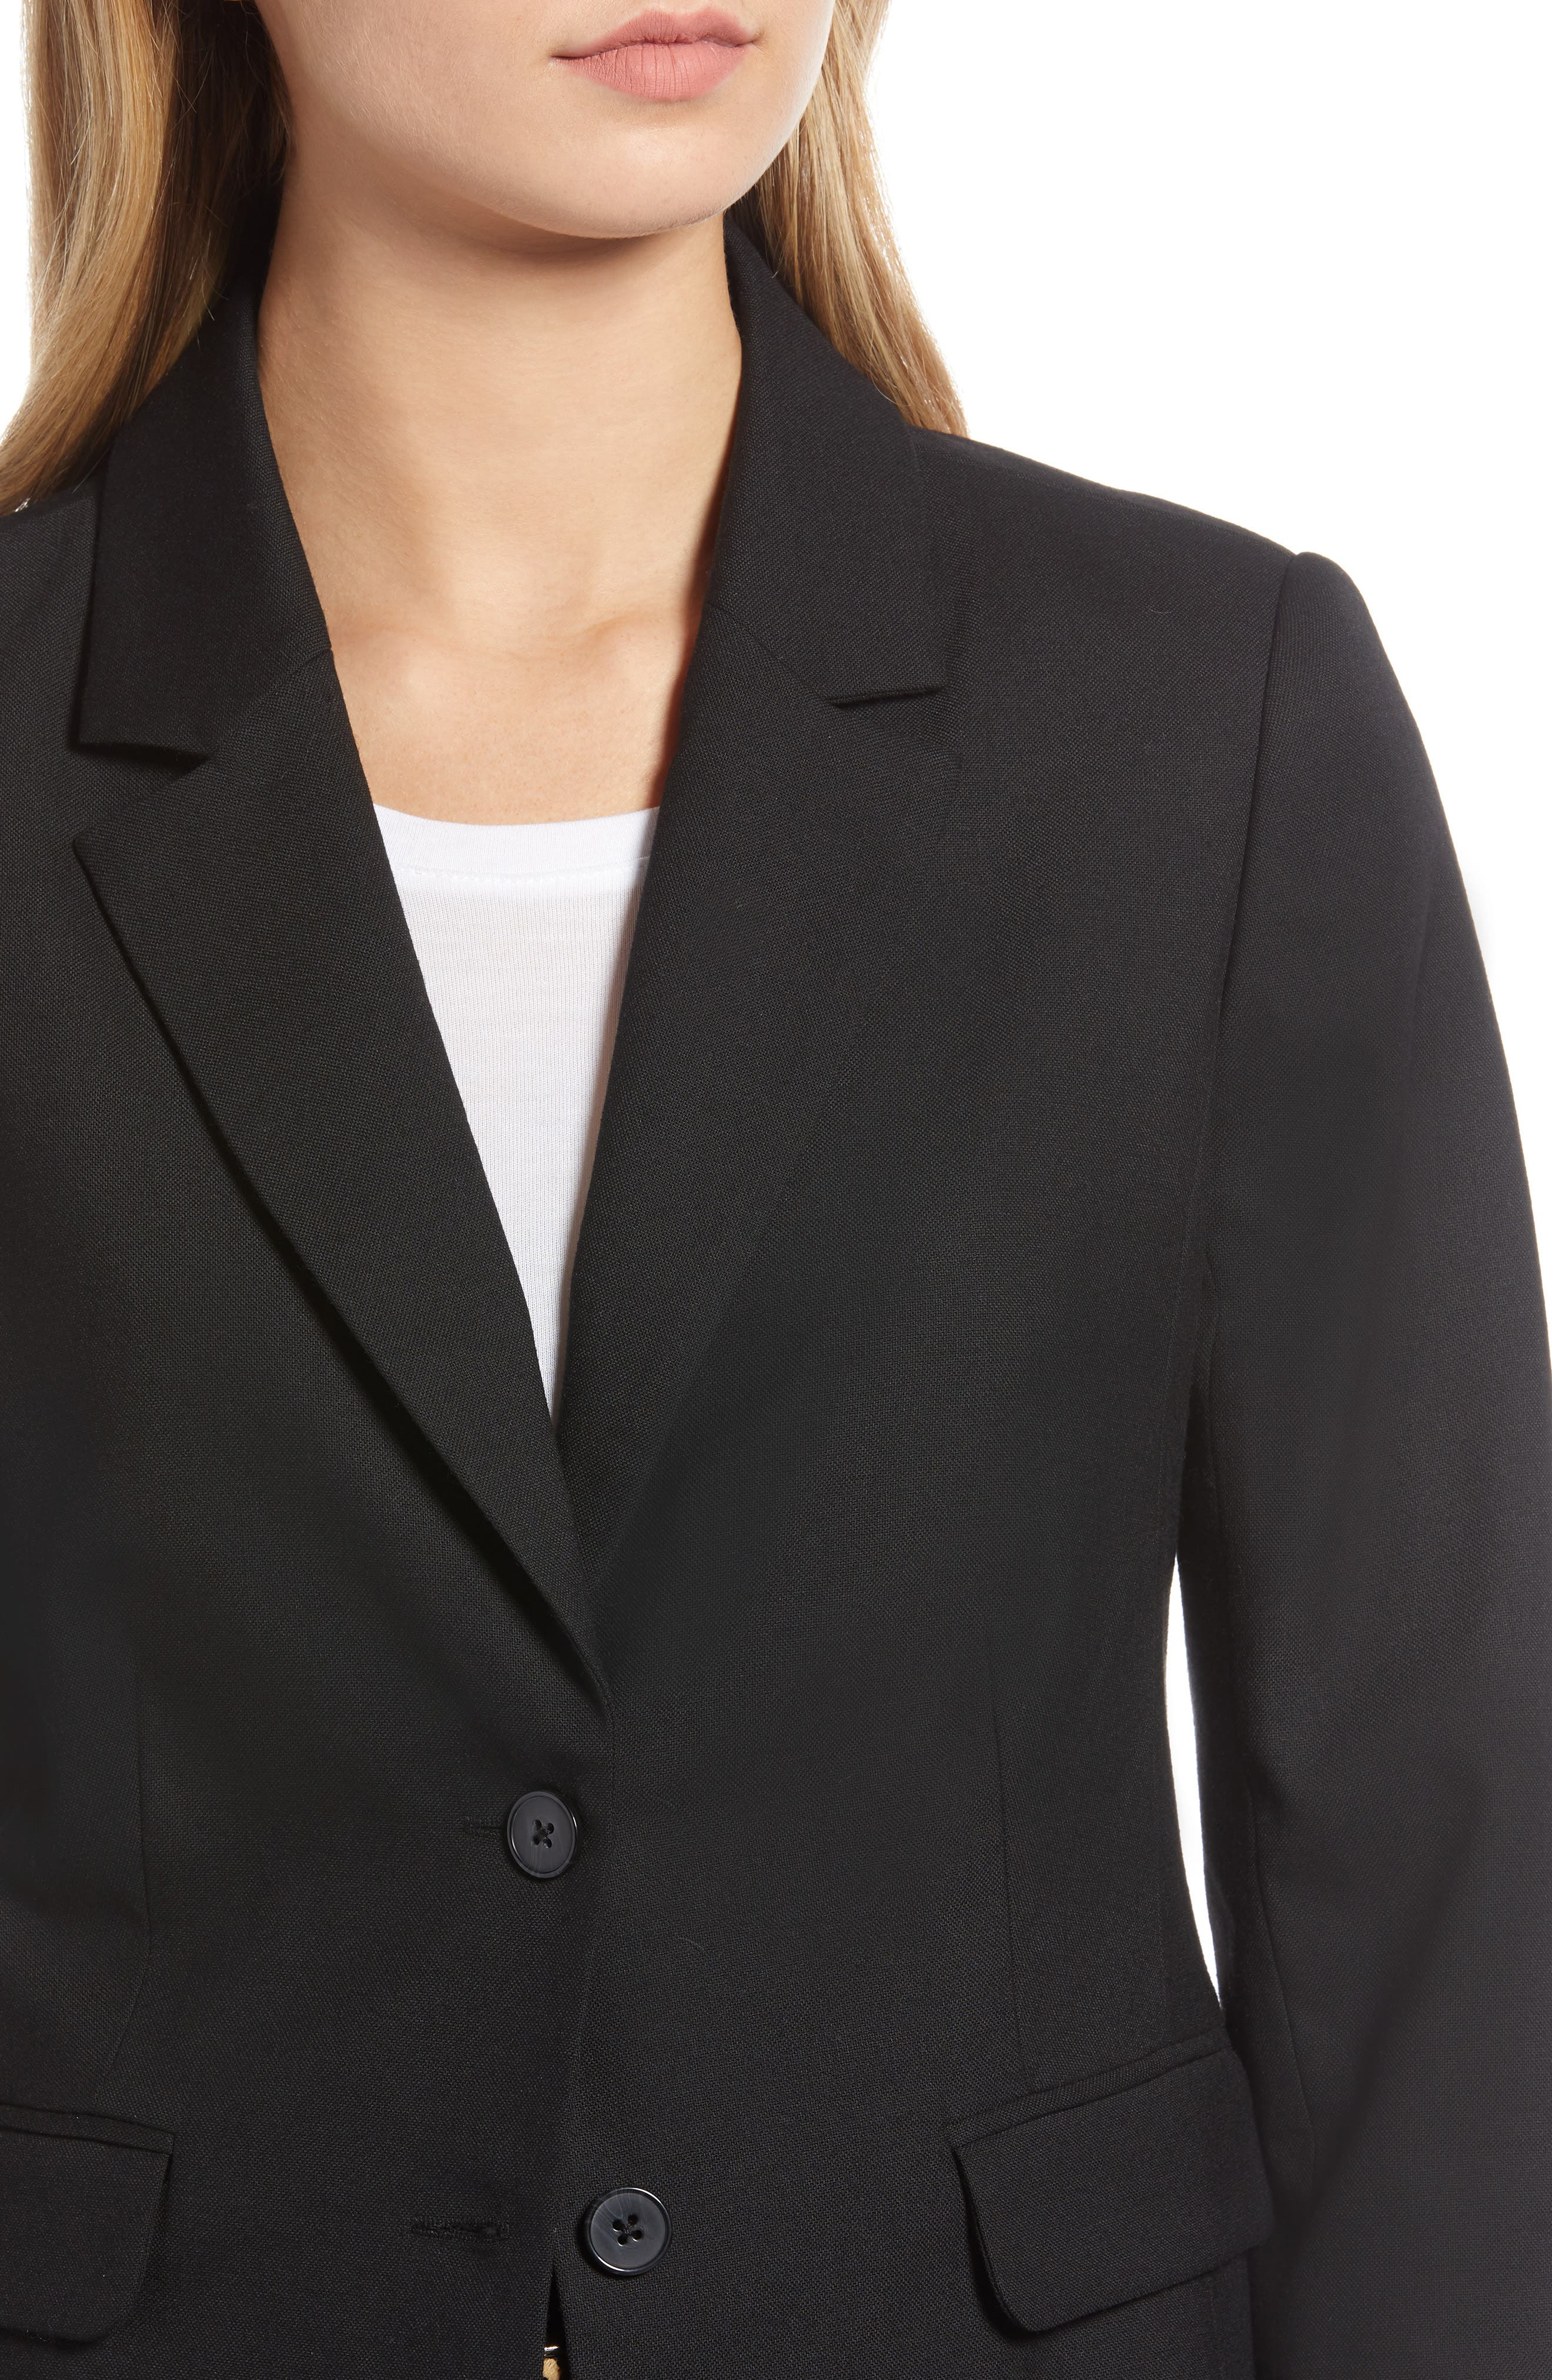 Original Wool Blazer,                             Alternate thumbnail 4, color,                             BLACK